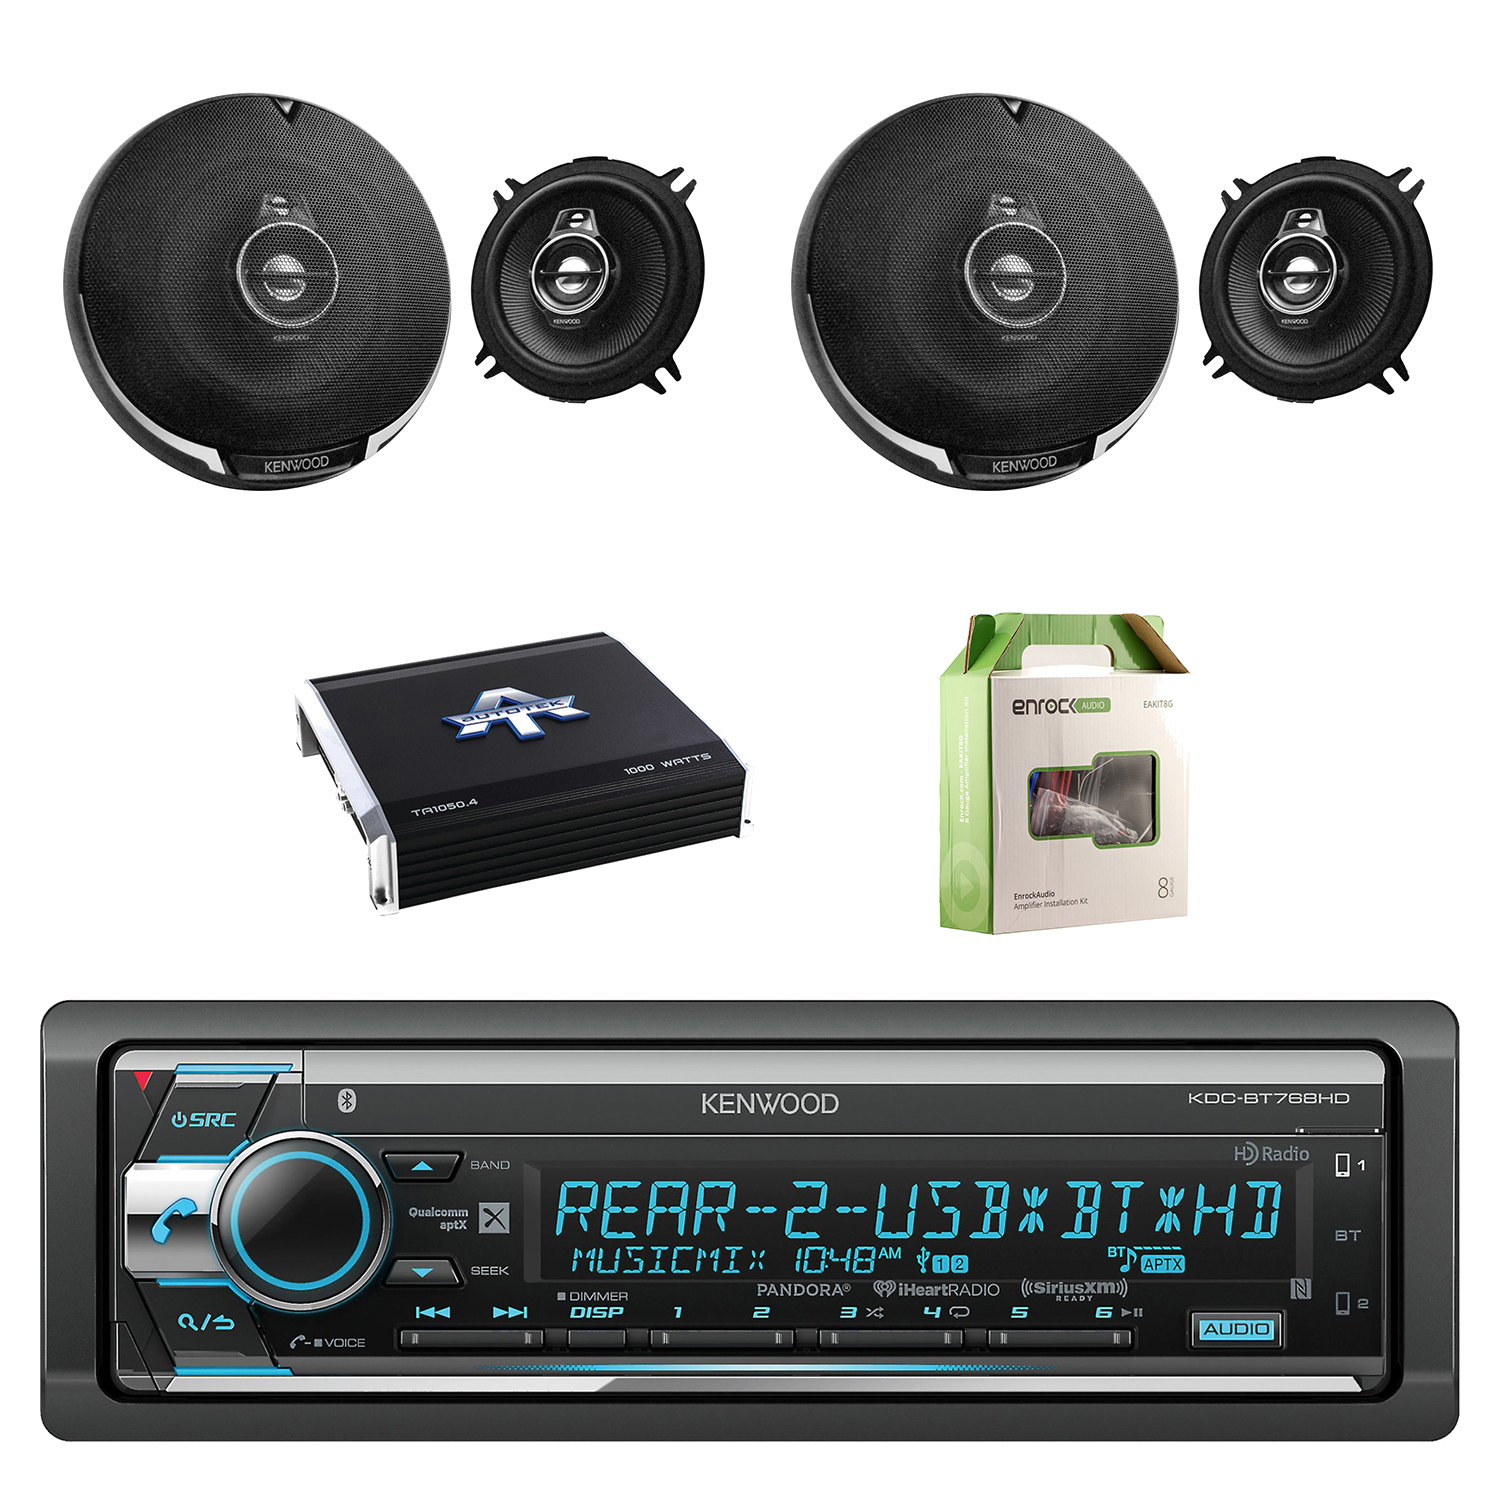 Kenwood Single Din CD AM FM Car Audio Receiver W Bluetooth with Kenwood 3-Way Car Audio Coaxial Speakers... by EnrockAutomotive